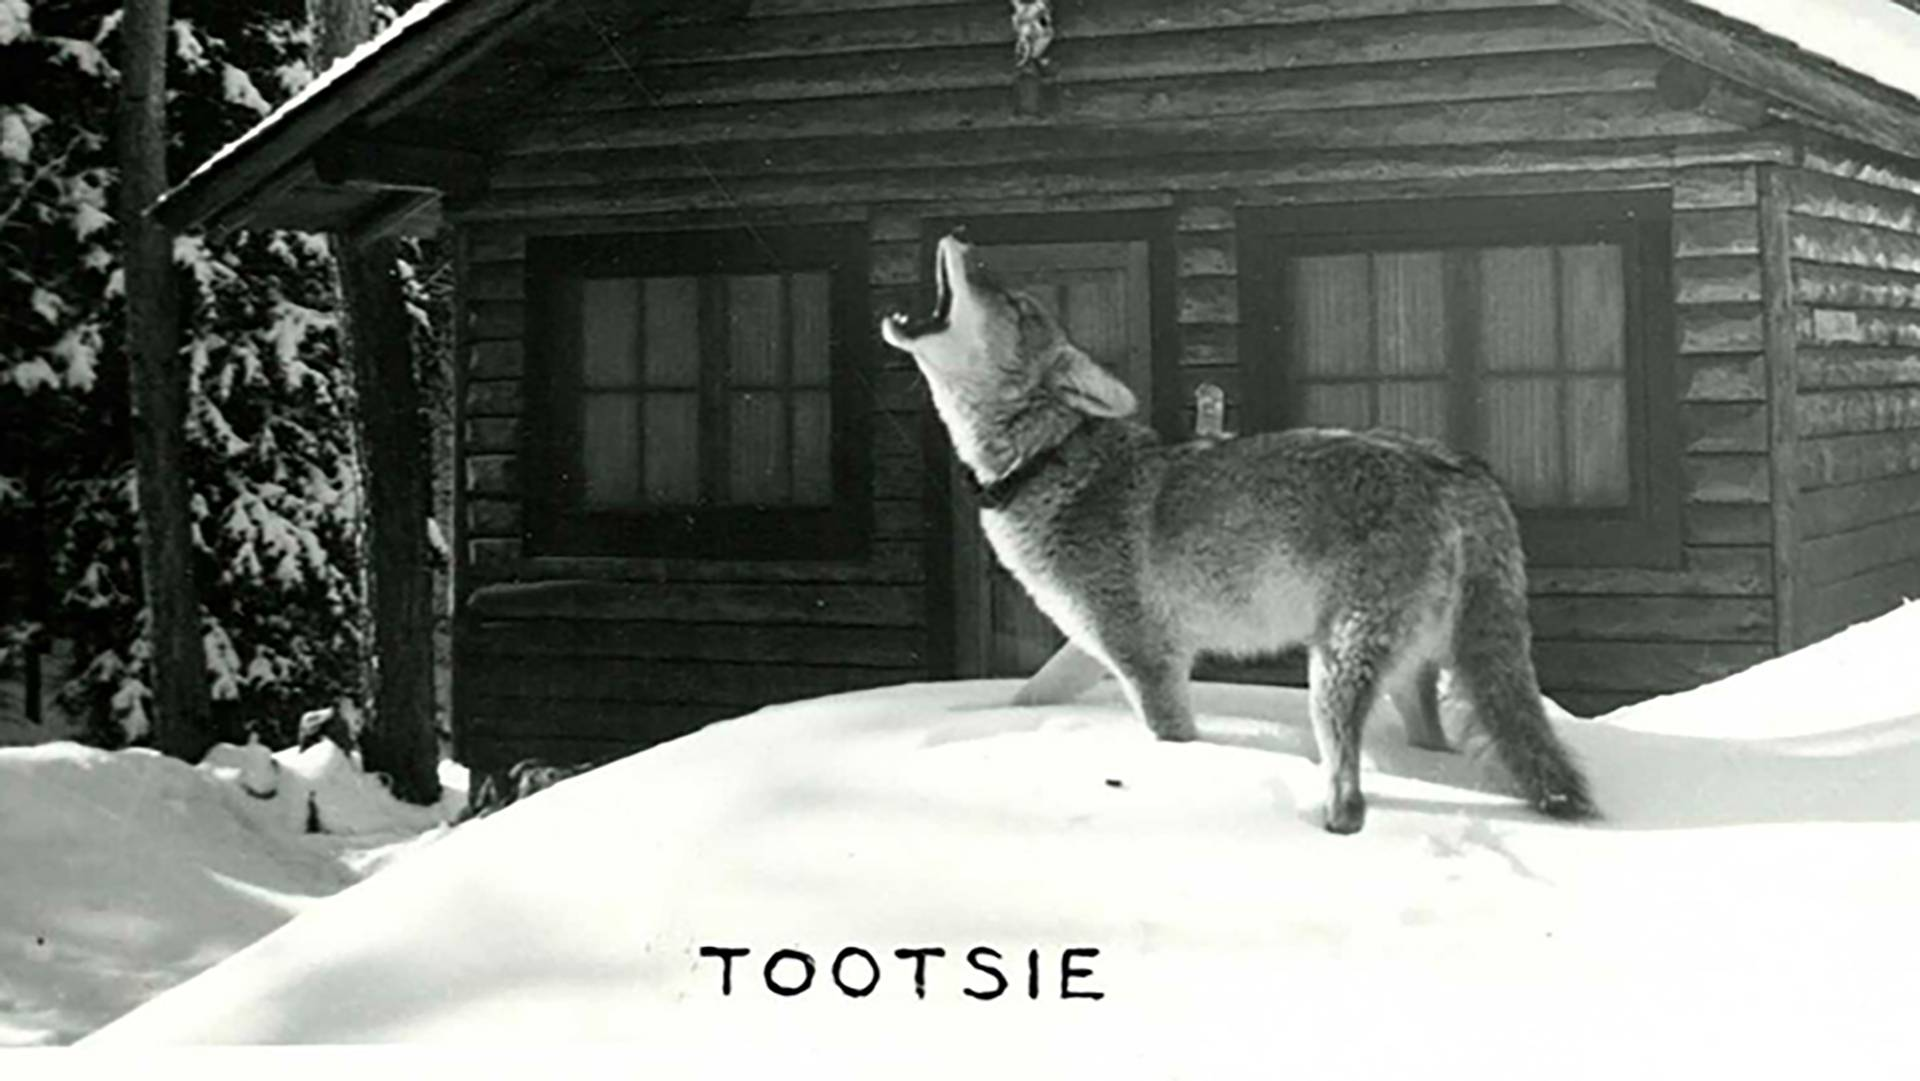 Tootsie the coyote